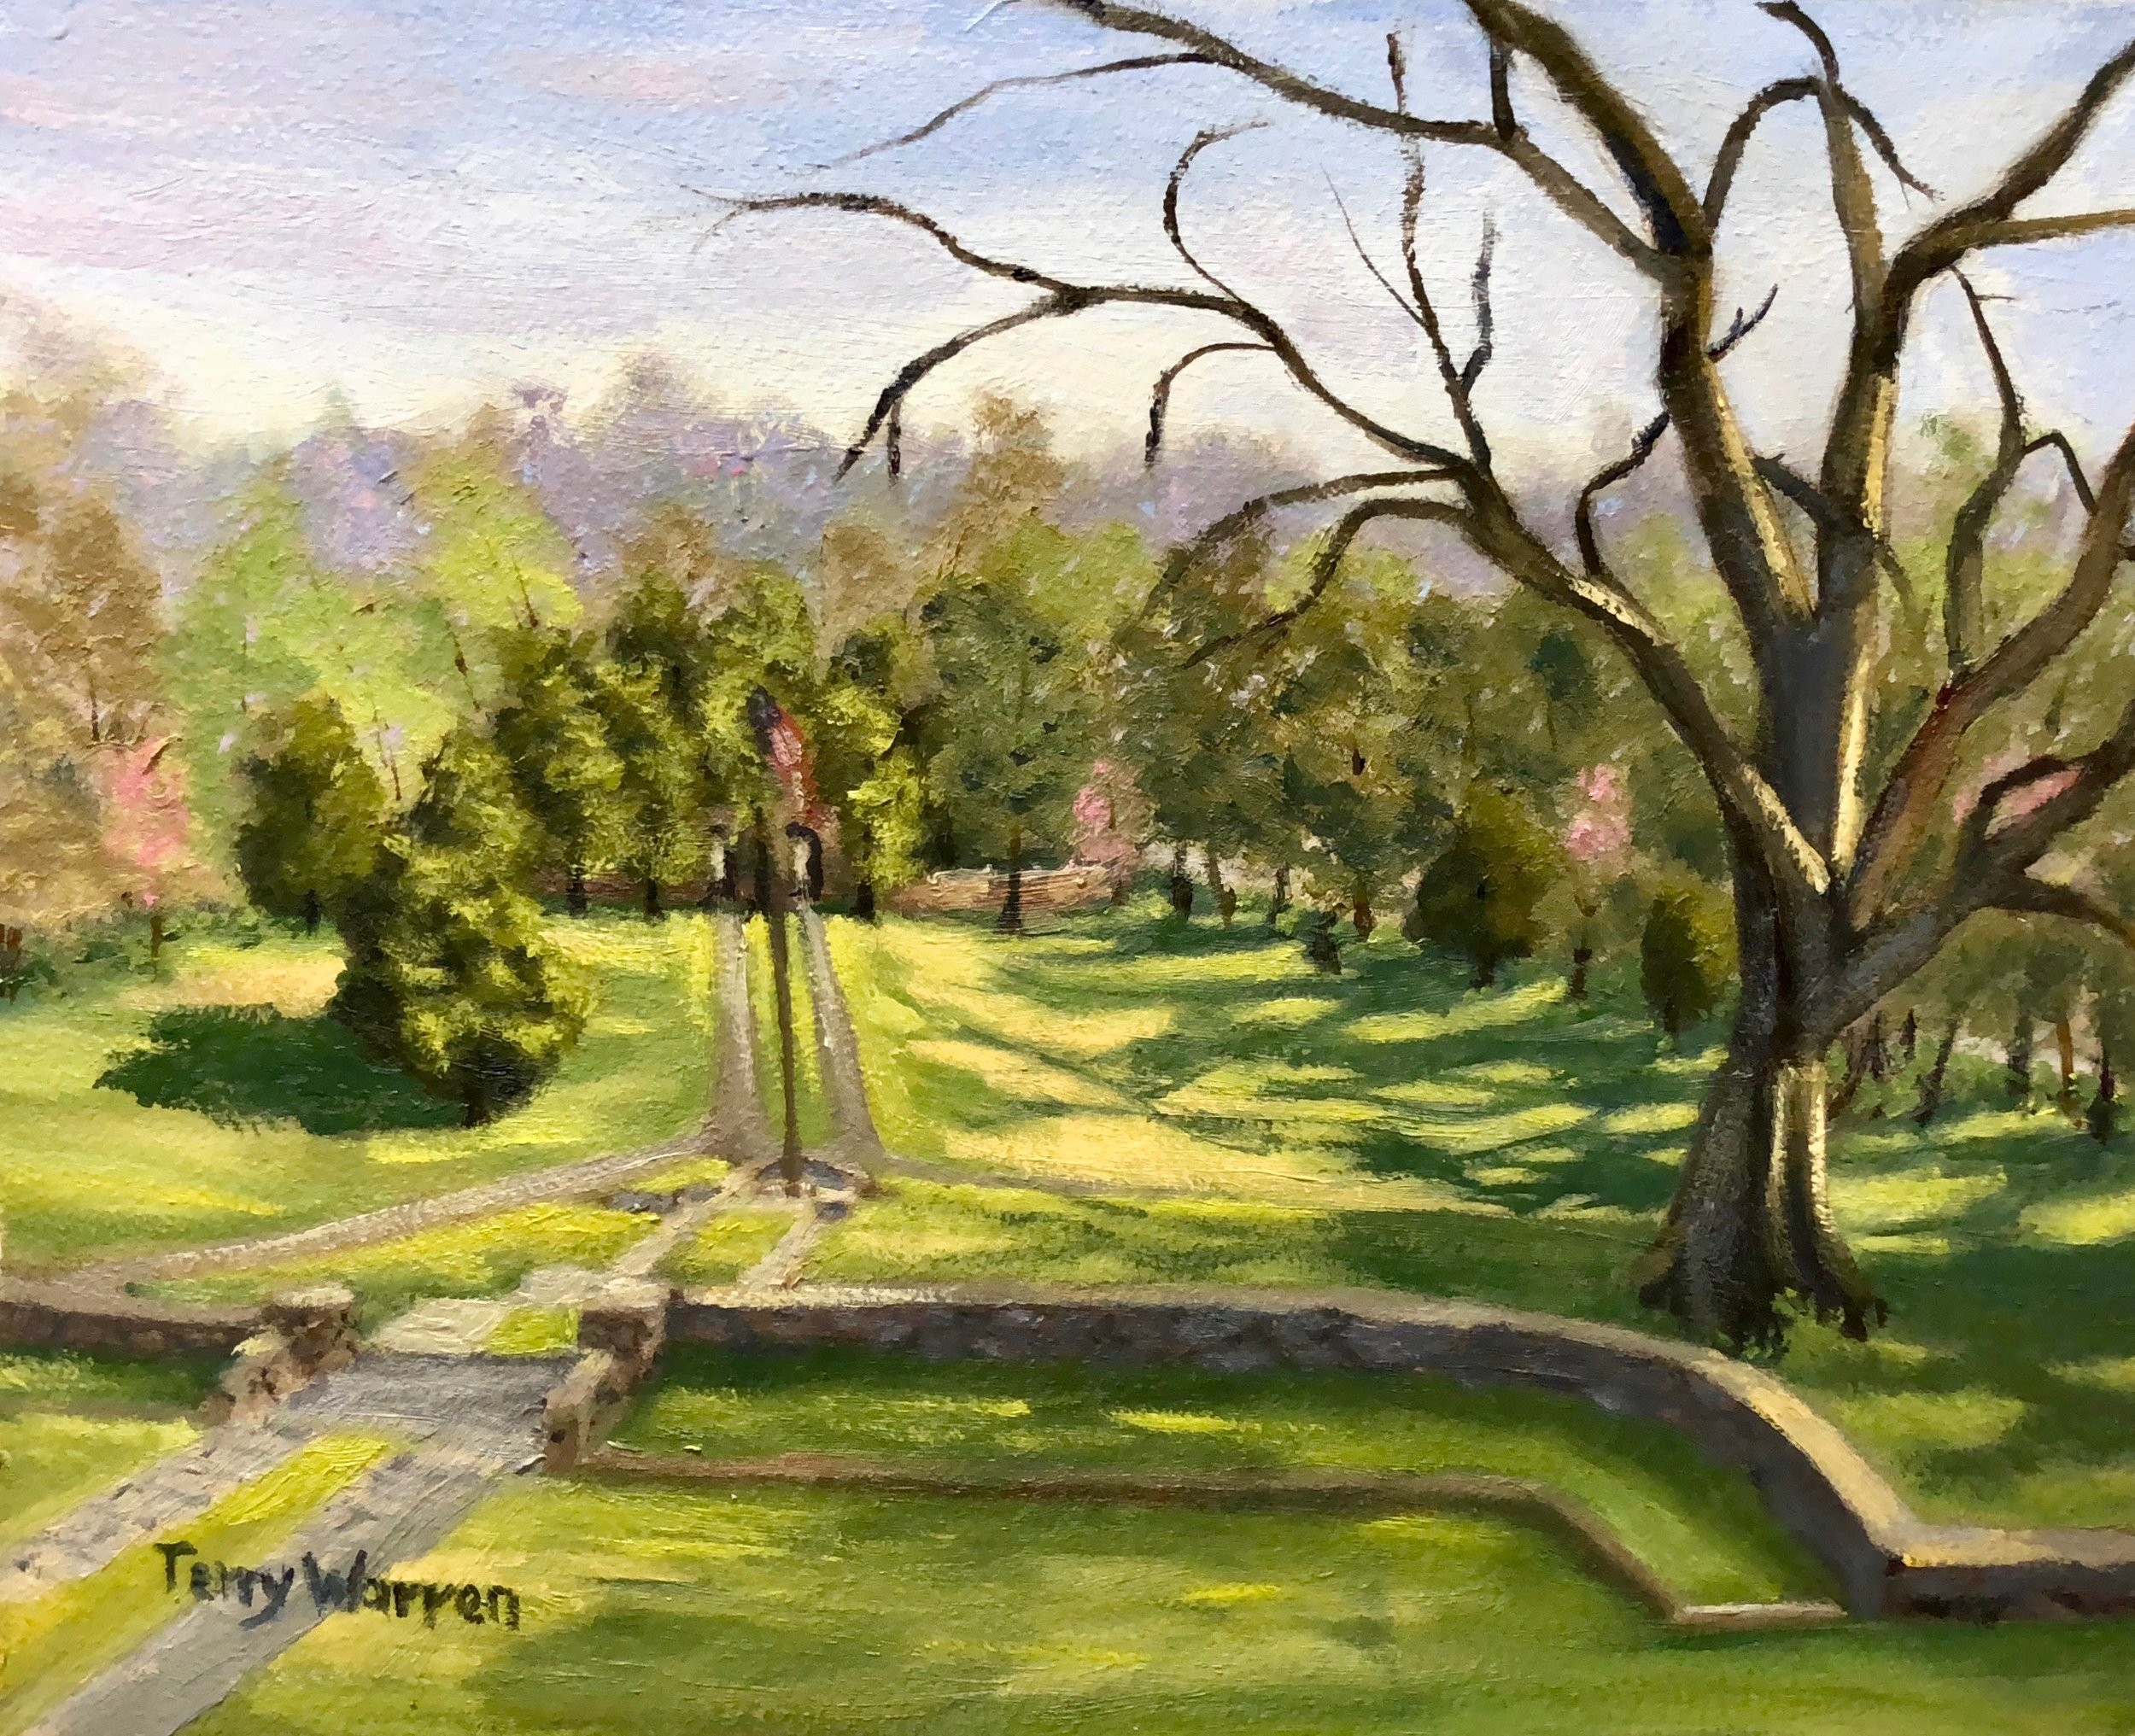 View from the Park, Sold